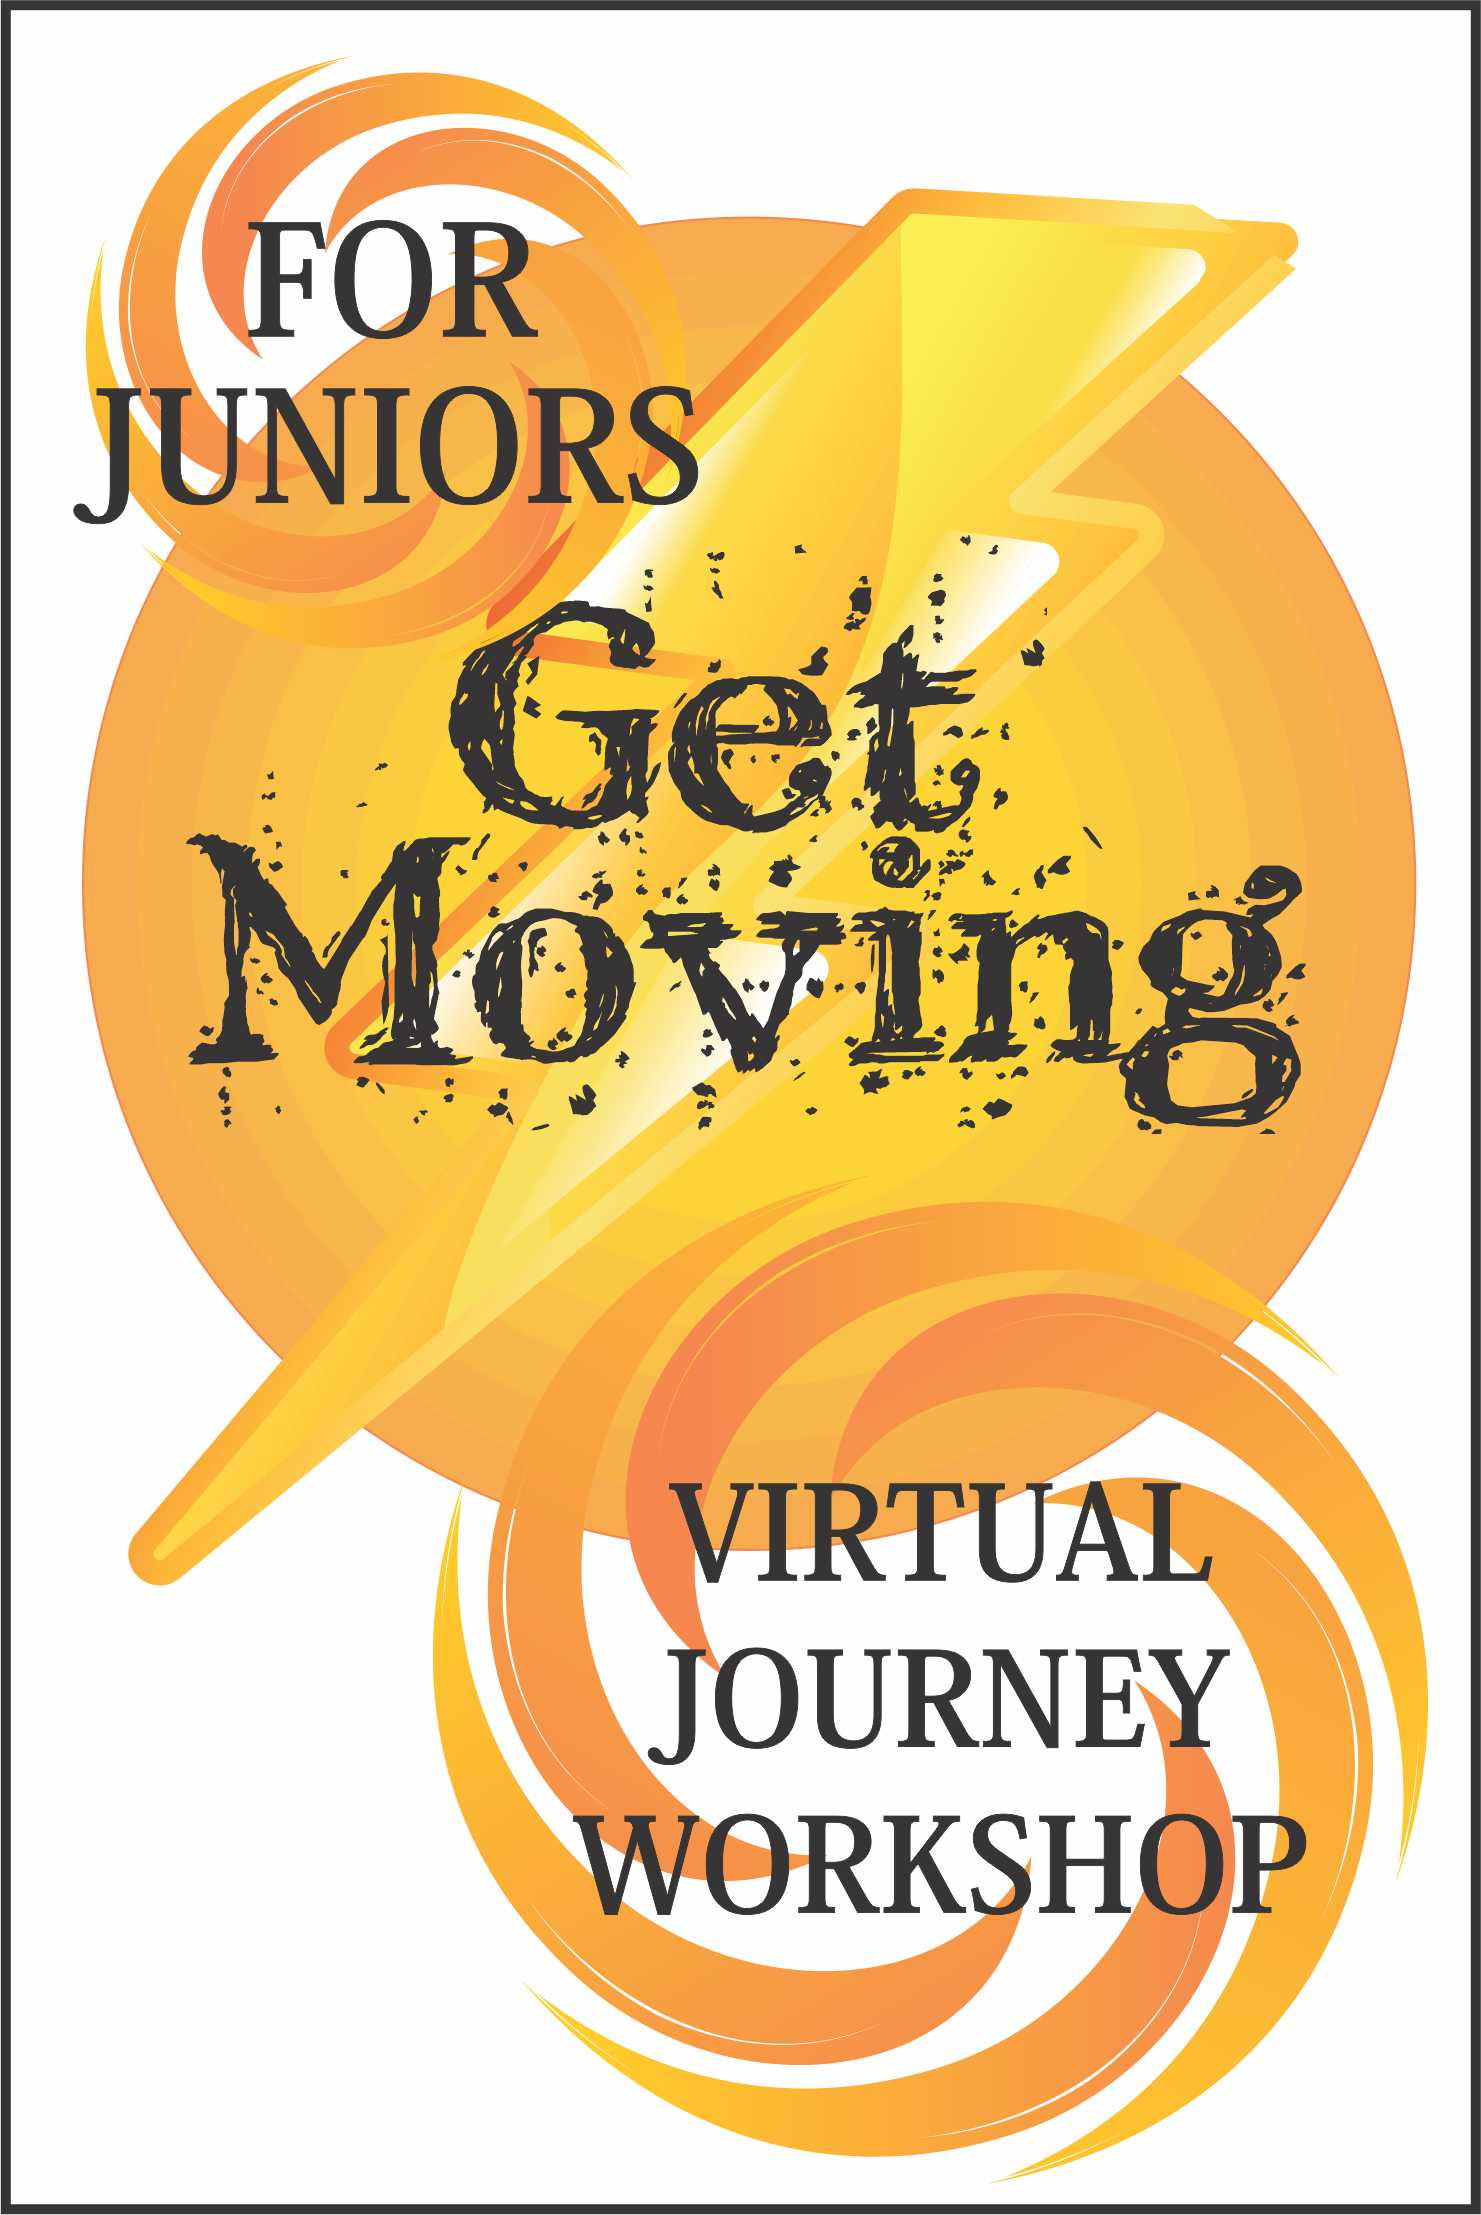 Get Moving is a journey in a day that your girls will love! It is packed with fun activities while they learn! #makingfriends #getmoving #virtualworkshop #onlineclass #girlscouts #gspatches #gsjourney #onlineactivities #funactivites #journeys #girlscoutsonline via @gsleader411